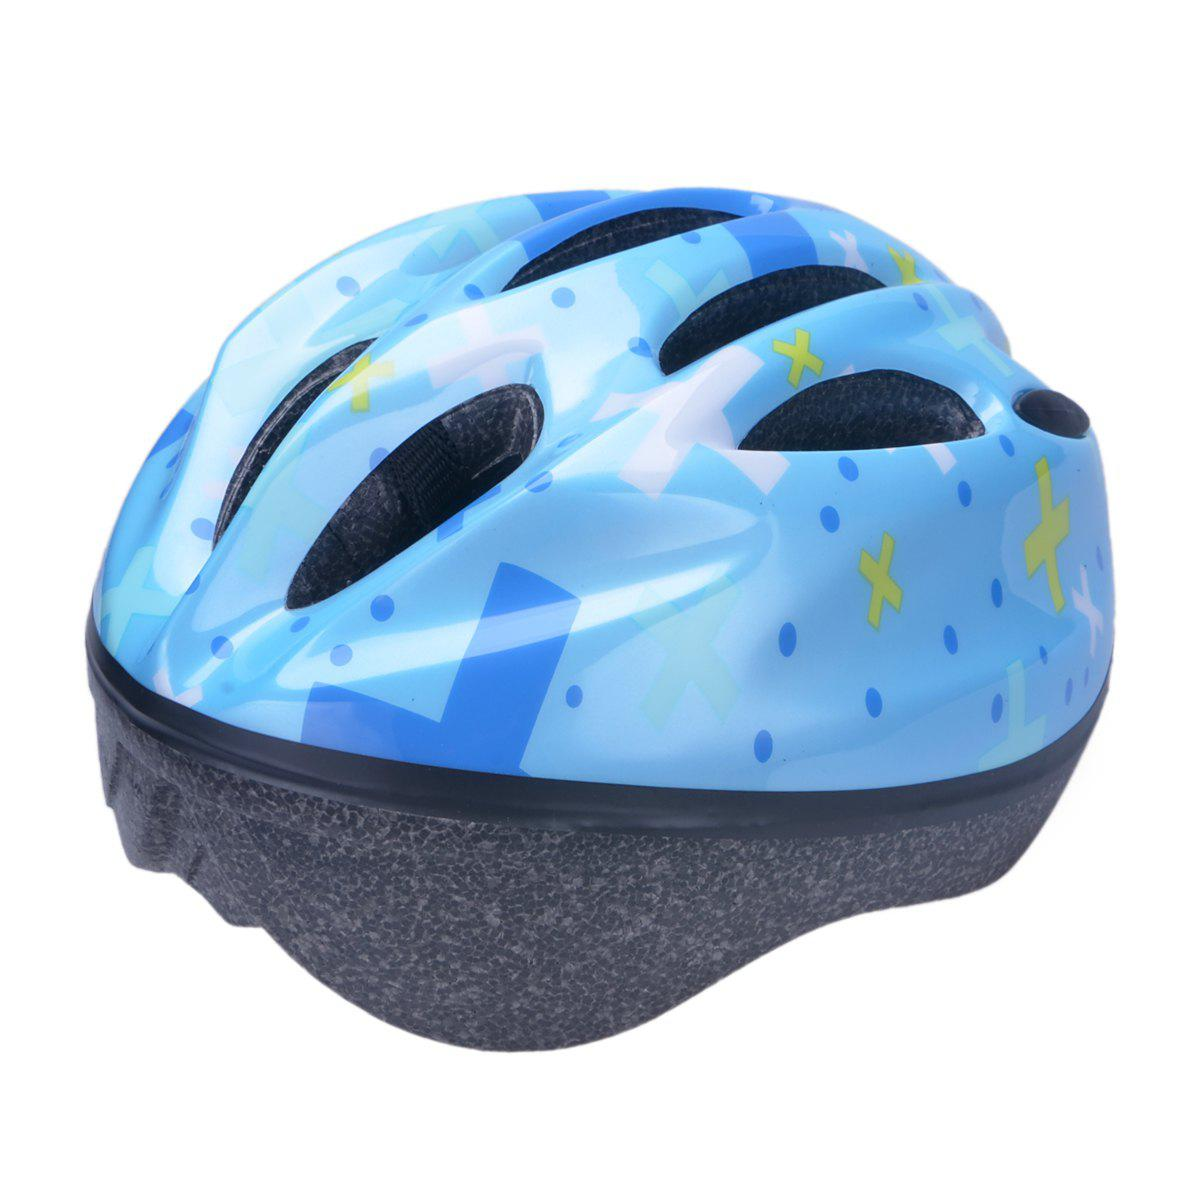 Fancy Comfortable and Safety EPS + PVC Integrally Molded Cycling Helmet for Kids ( 10 Vents )